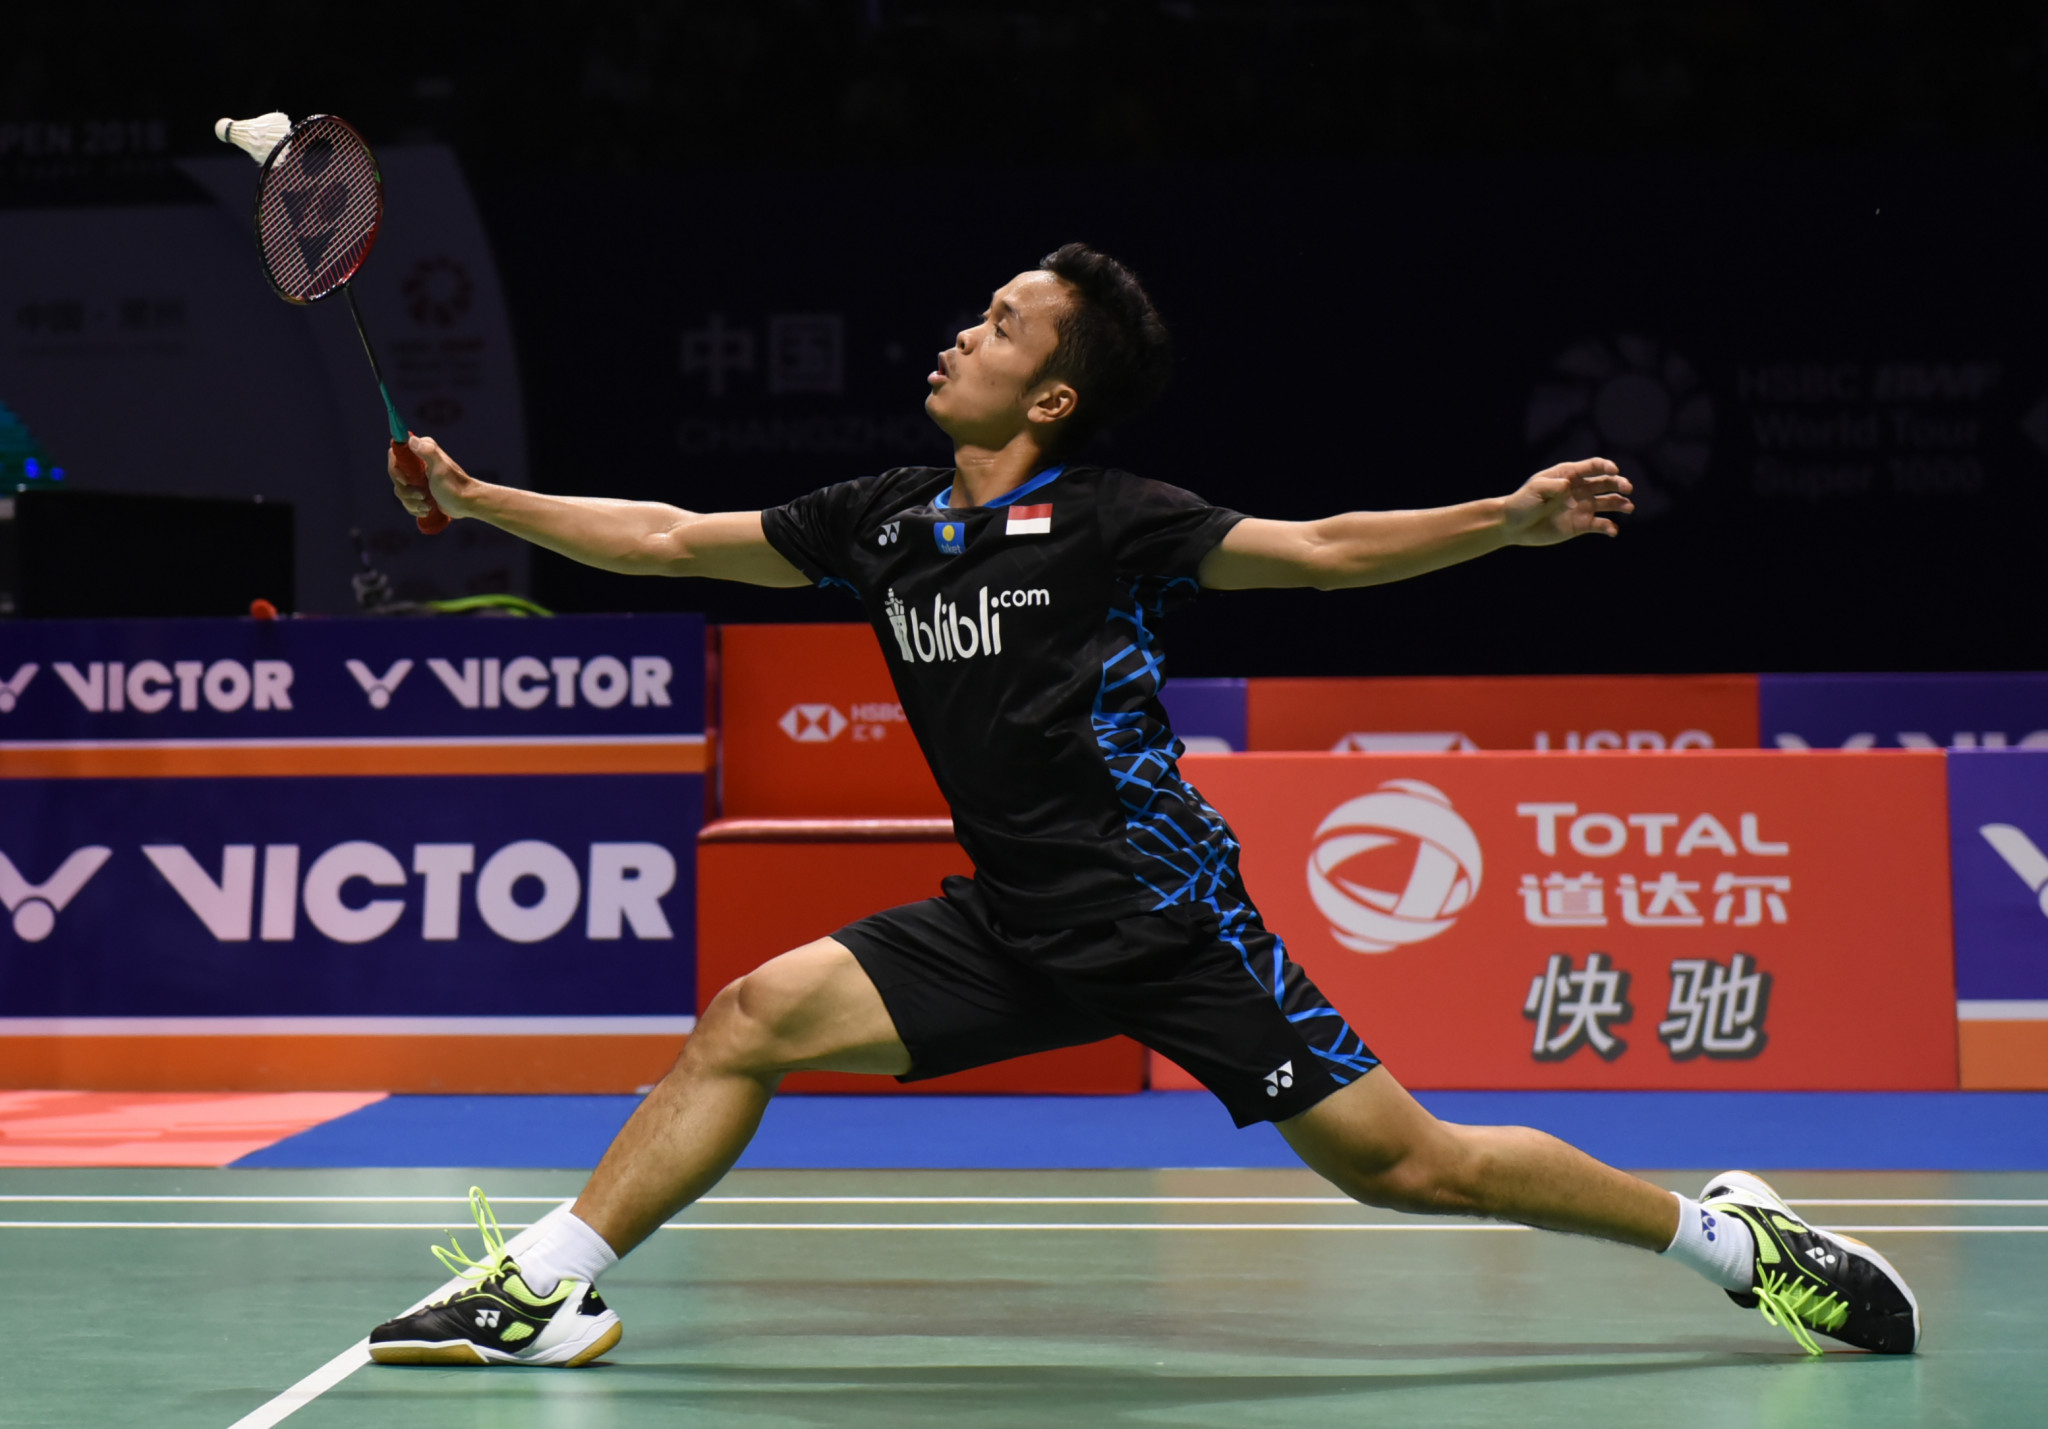 Ginting stuns Momota to clinch first major title at BWF China Open